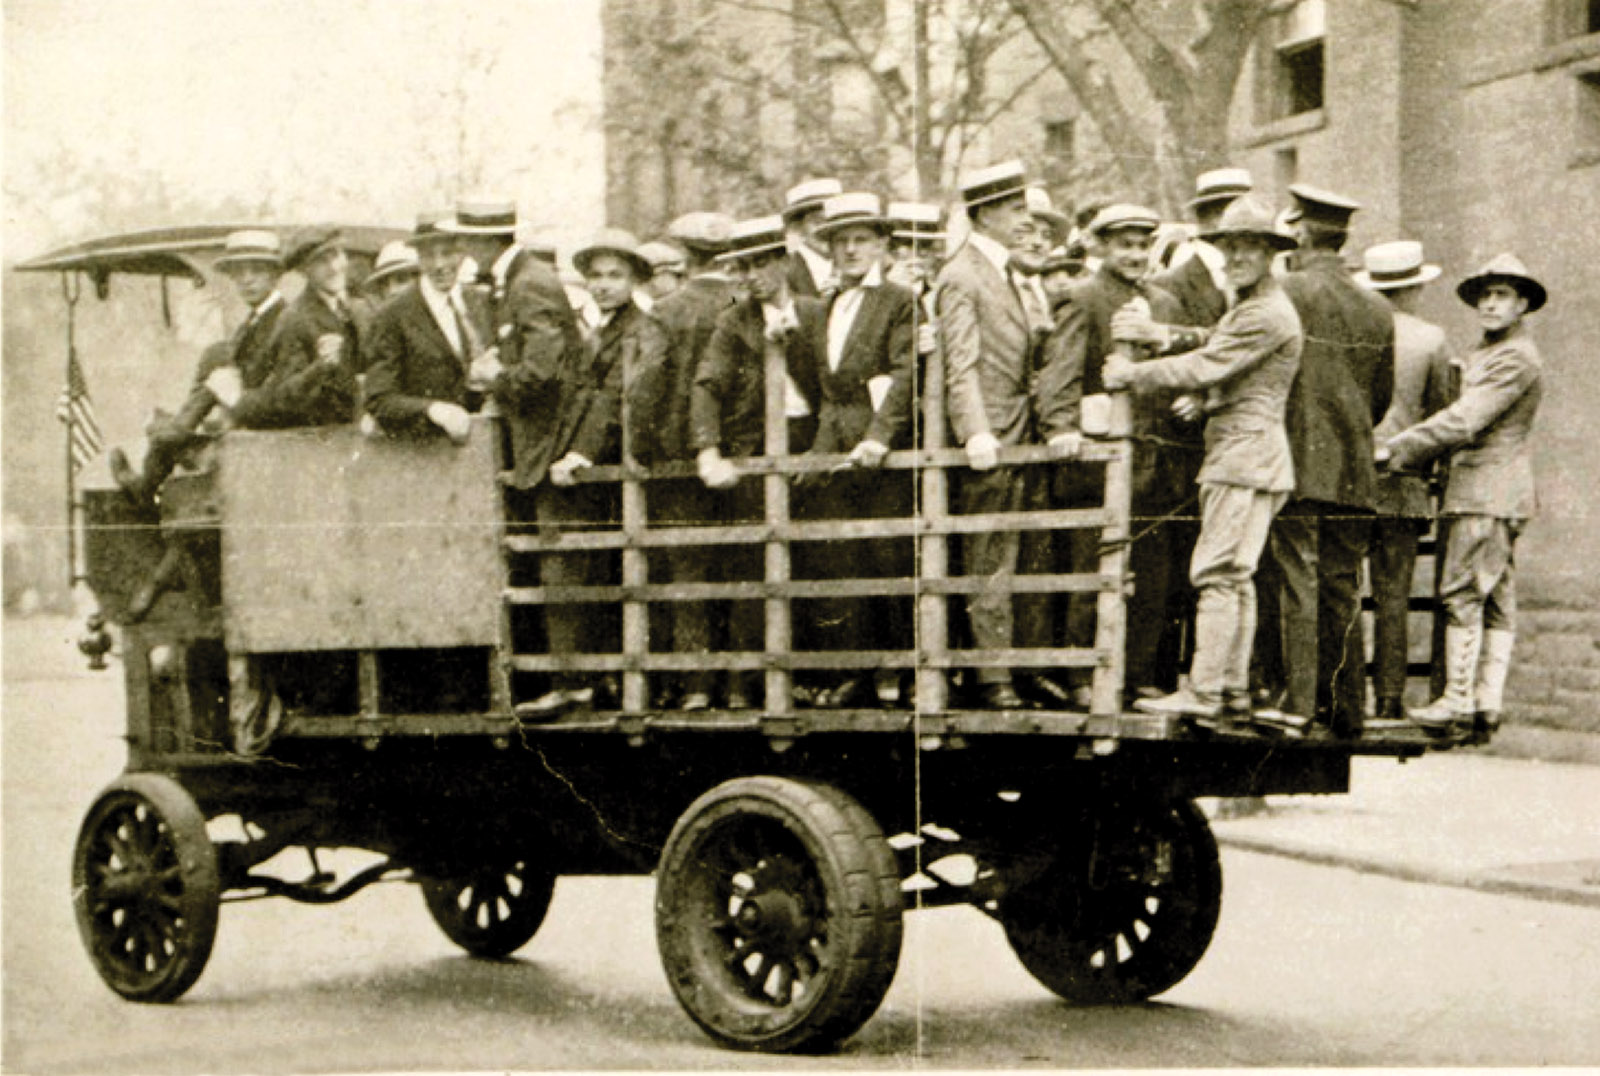 Suspected draft dodgers picked up in a 'slacker raid,' New York City, 1918